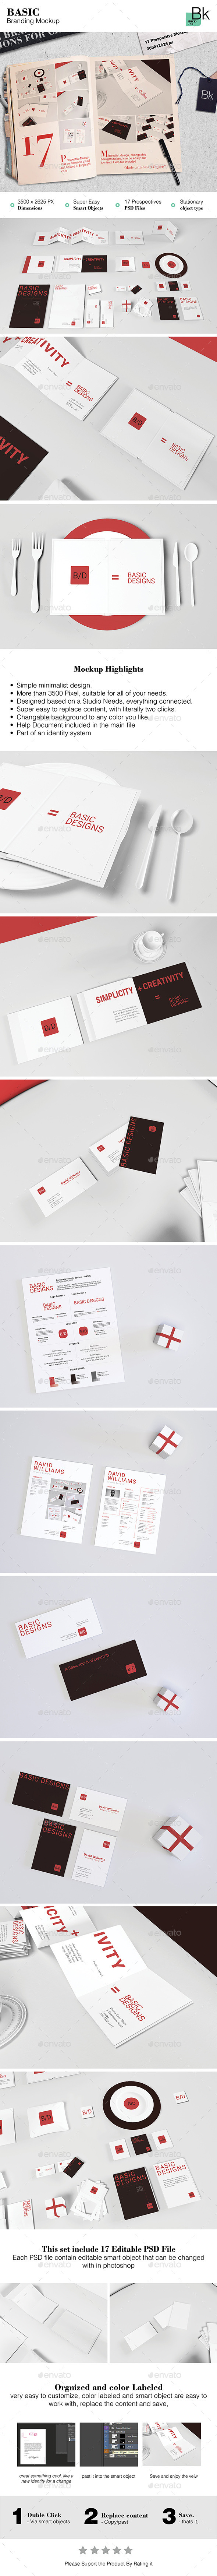 GraphicRiver Stationery Mockup Basic 11874106